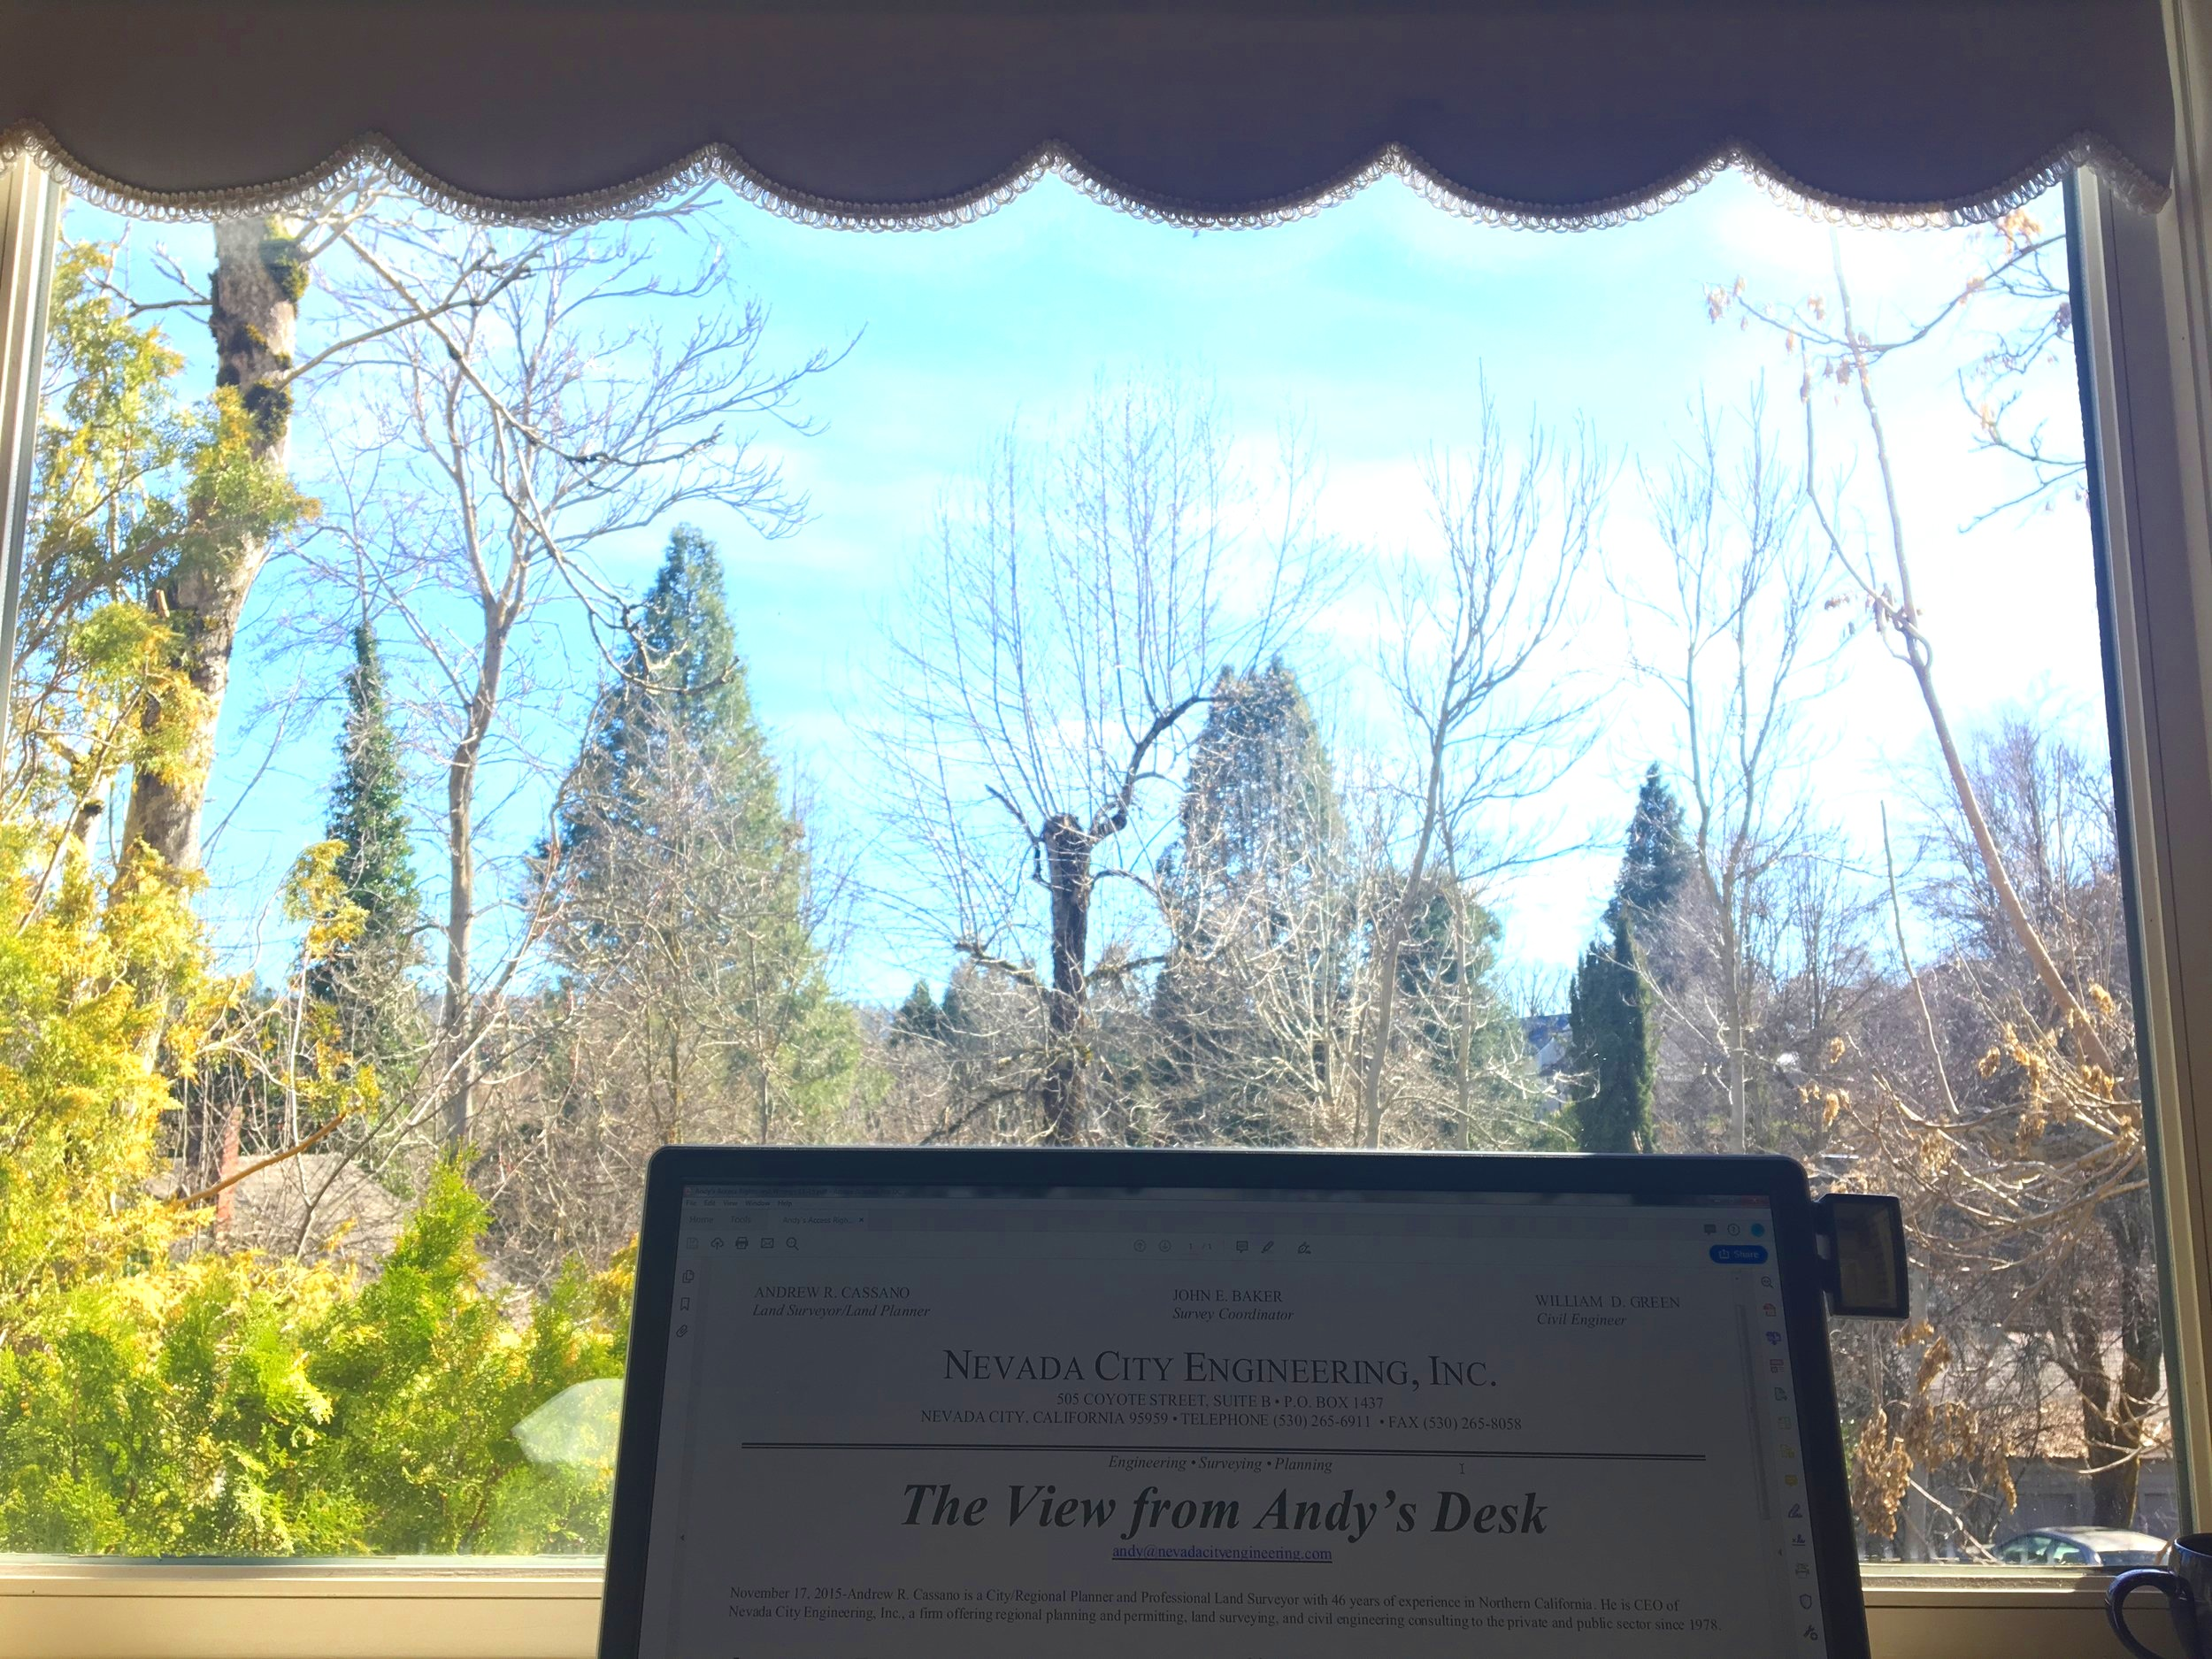 The View from Andy's Desk - Newsletter